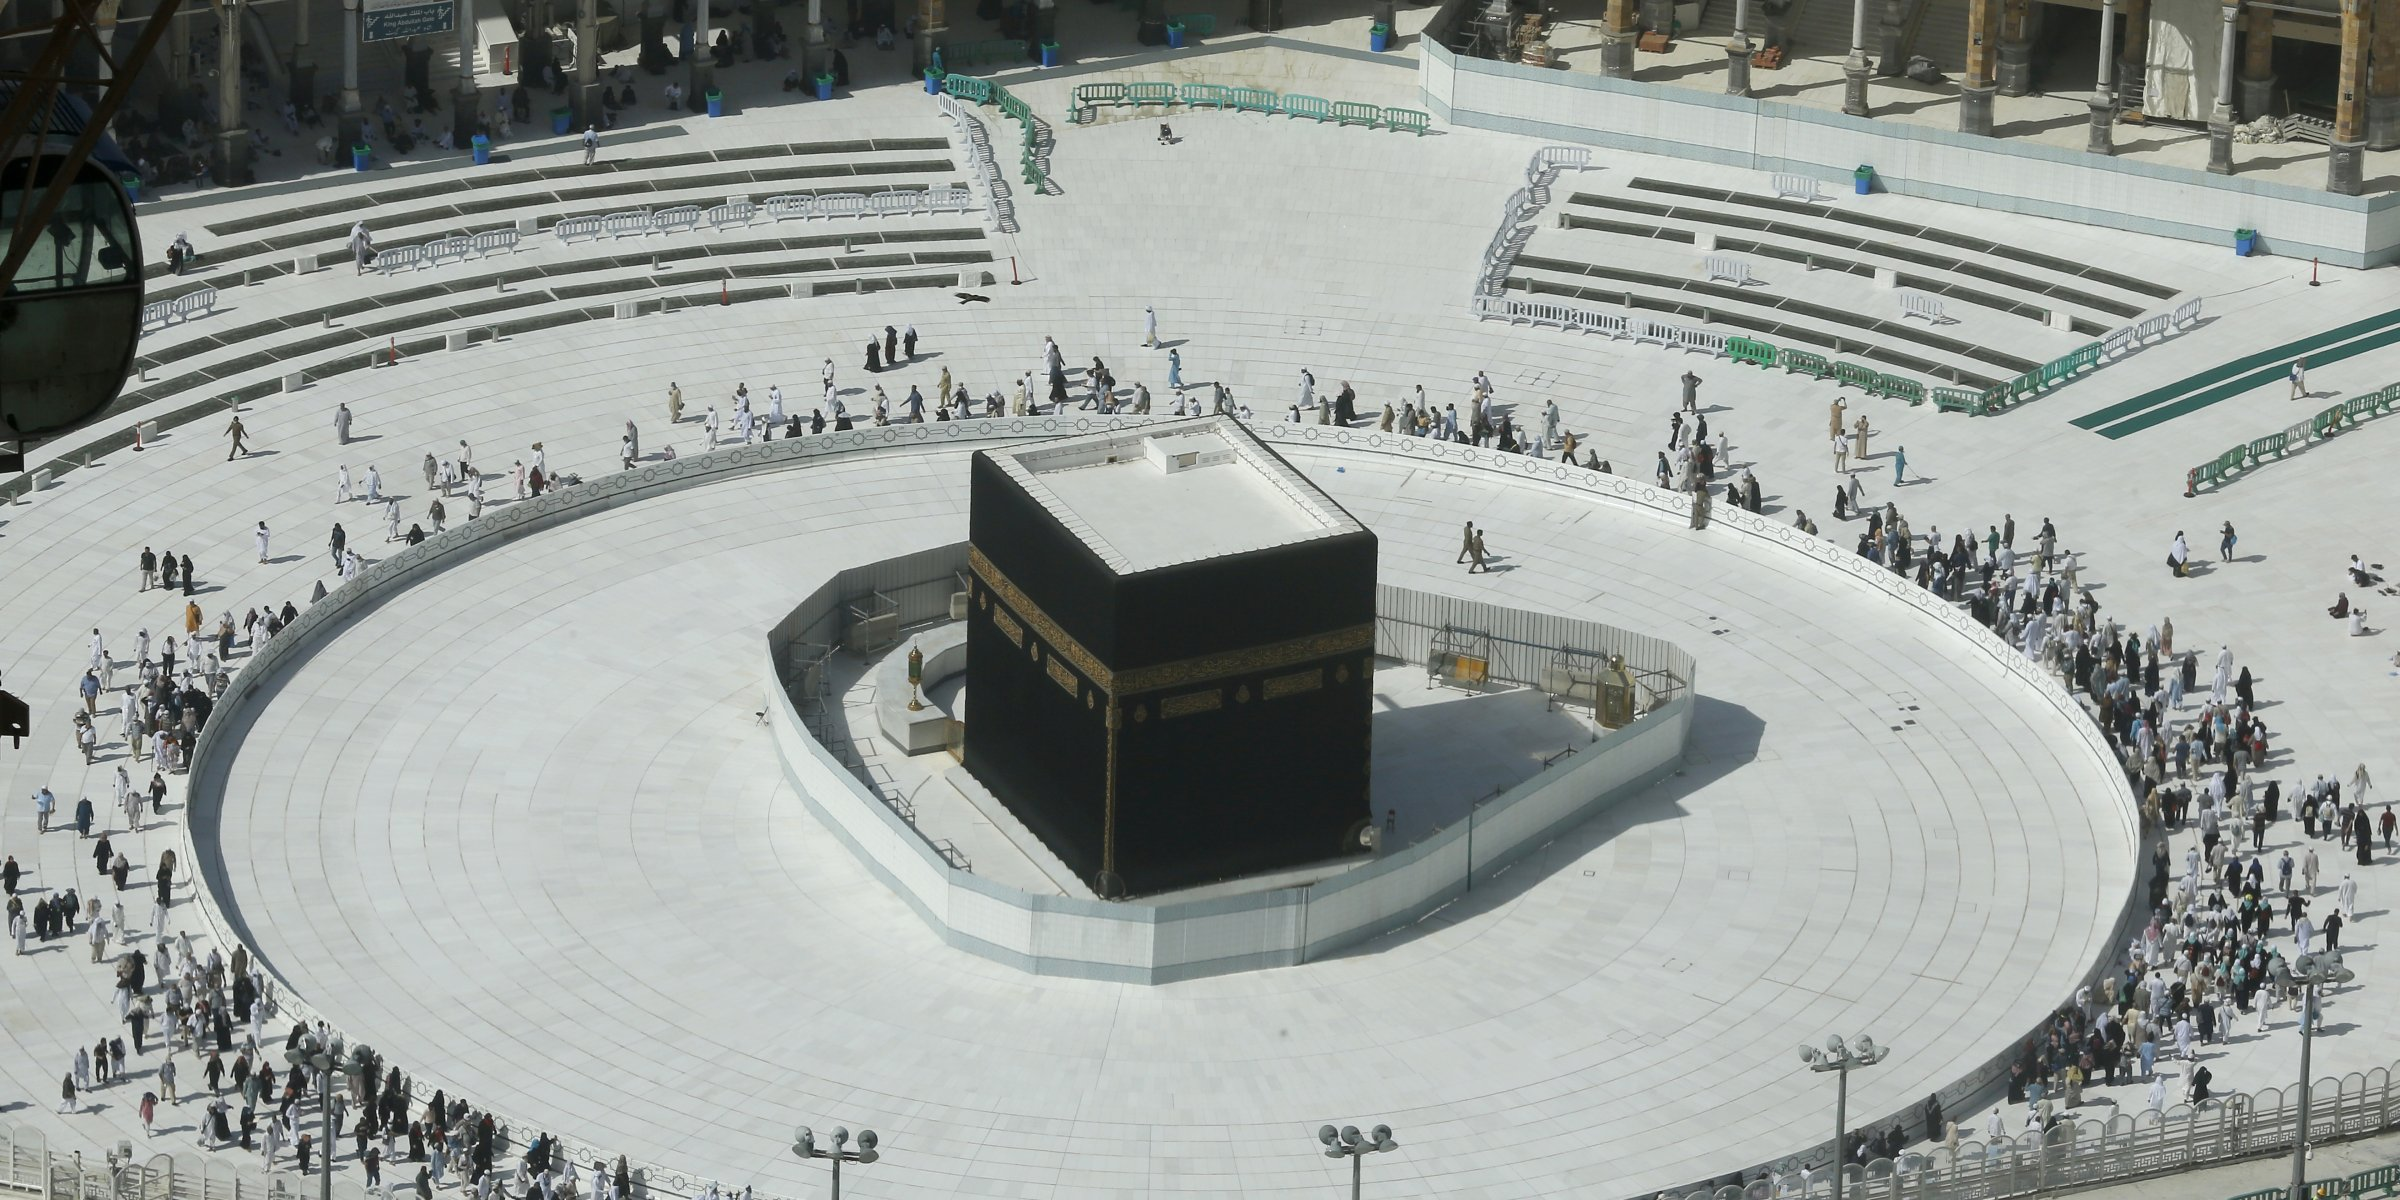 Saudi Arabia Suspends Prayers At All Mosques Over Coronavirus Holiest Mecca Medina Sites Excluded Daily Sabah